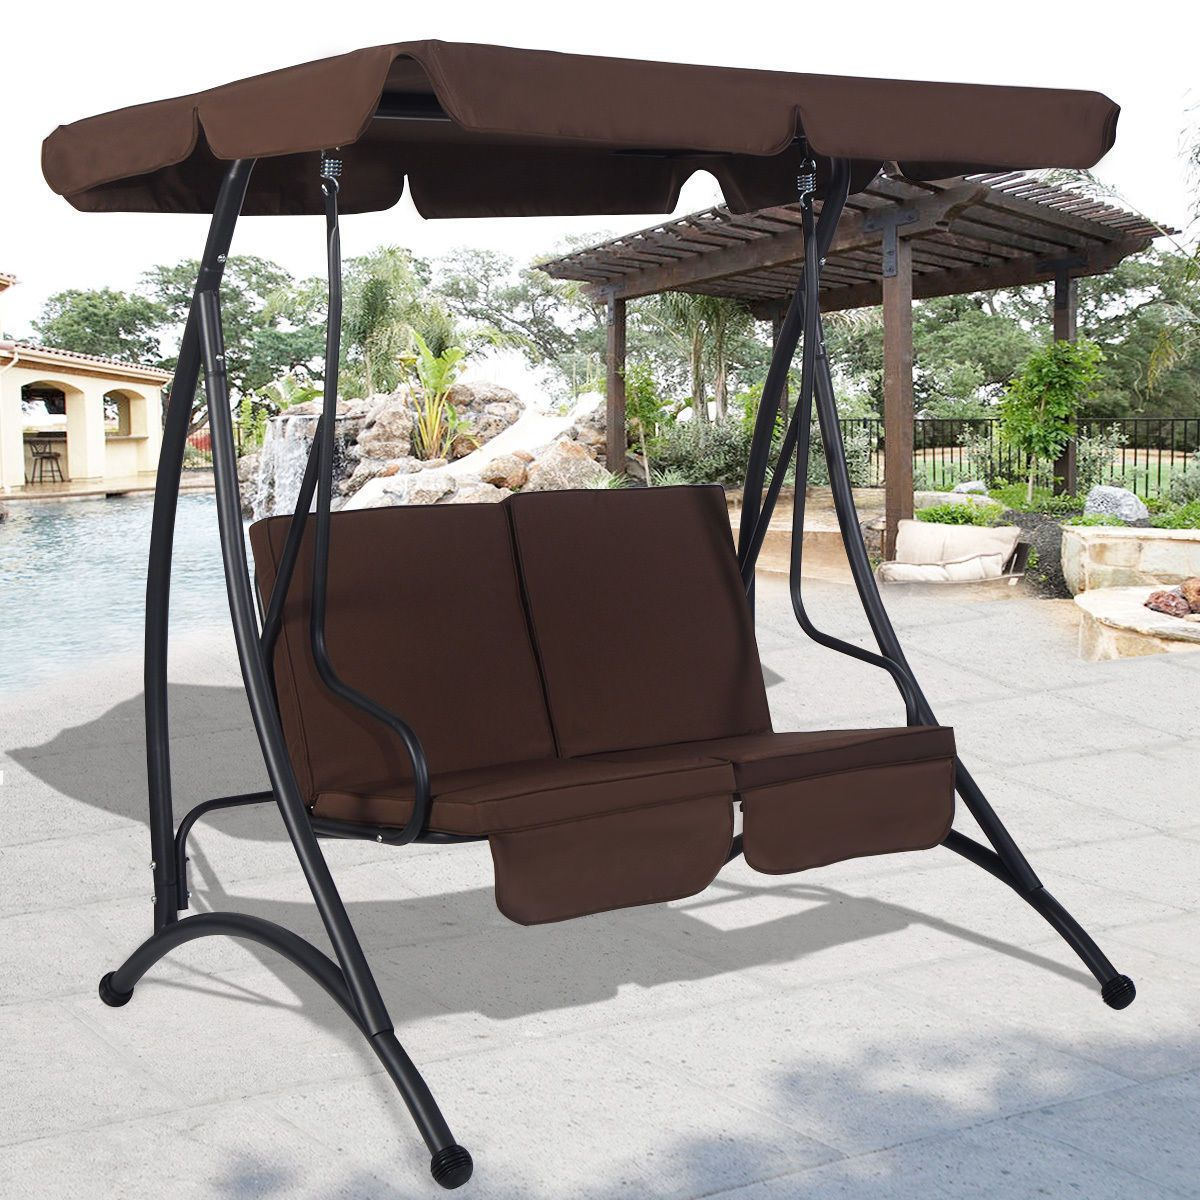 Outdoor Patio Canopy Swing Chair Metal 2 Person Hammock Regarding Garden Leisure Outdoor Hammock Patio Canopy Rocking Chairs (View 2 of 25)